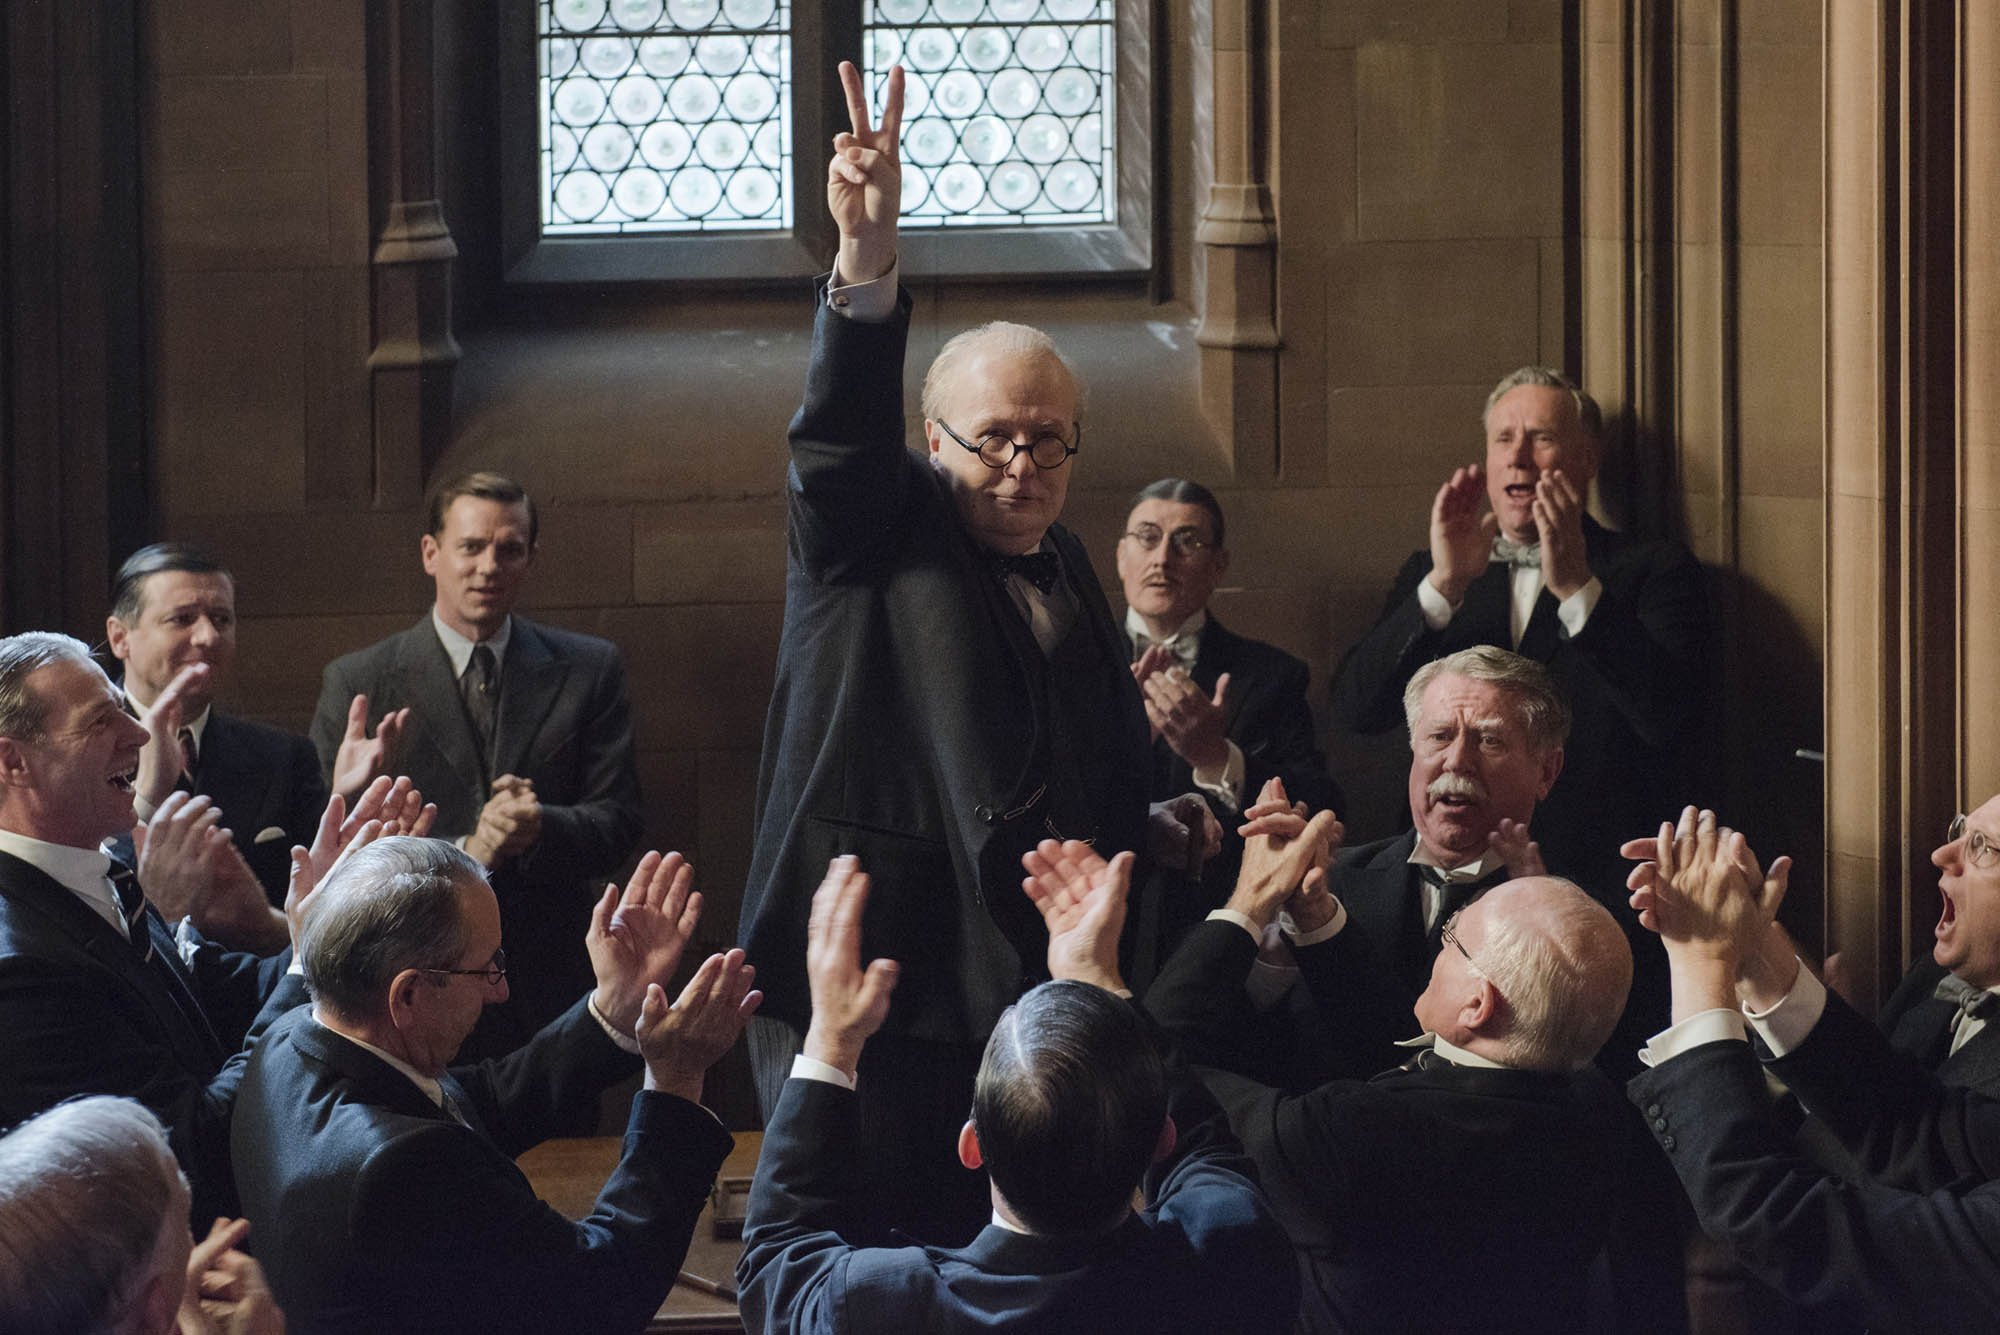 черчилль гэри олдмен темные времена рецензия darkest hour отврарительные мужики disgusting men